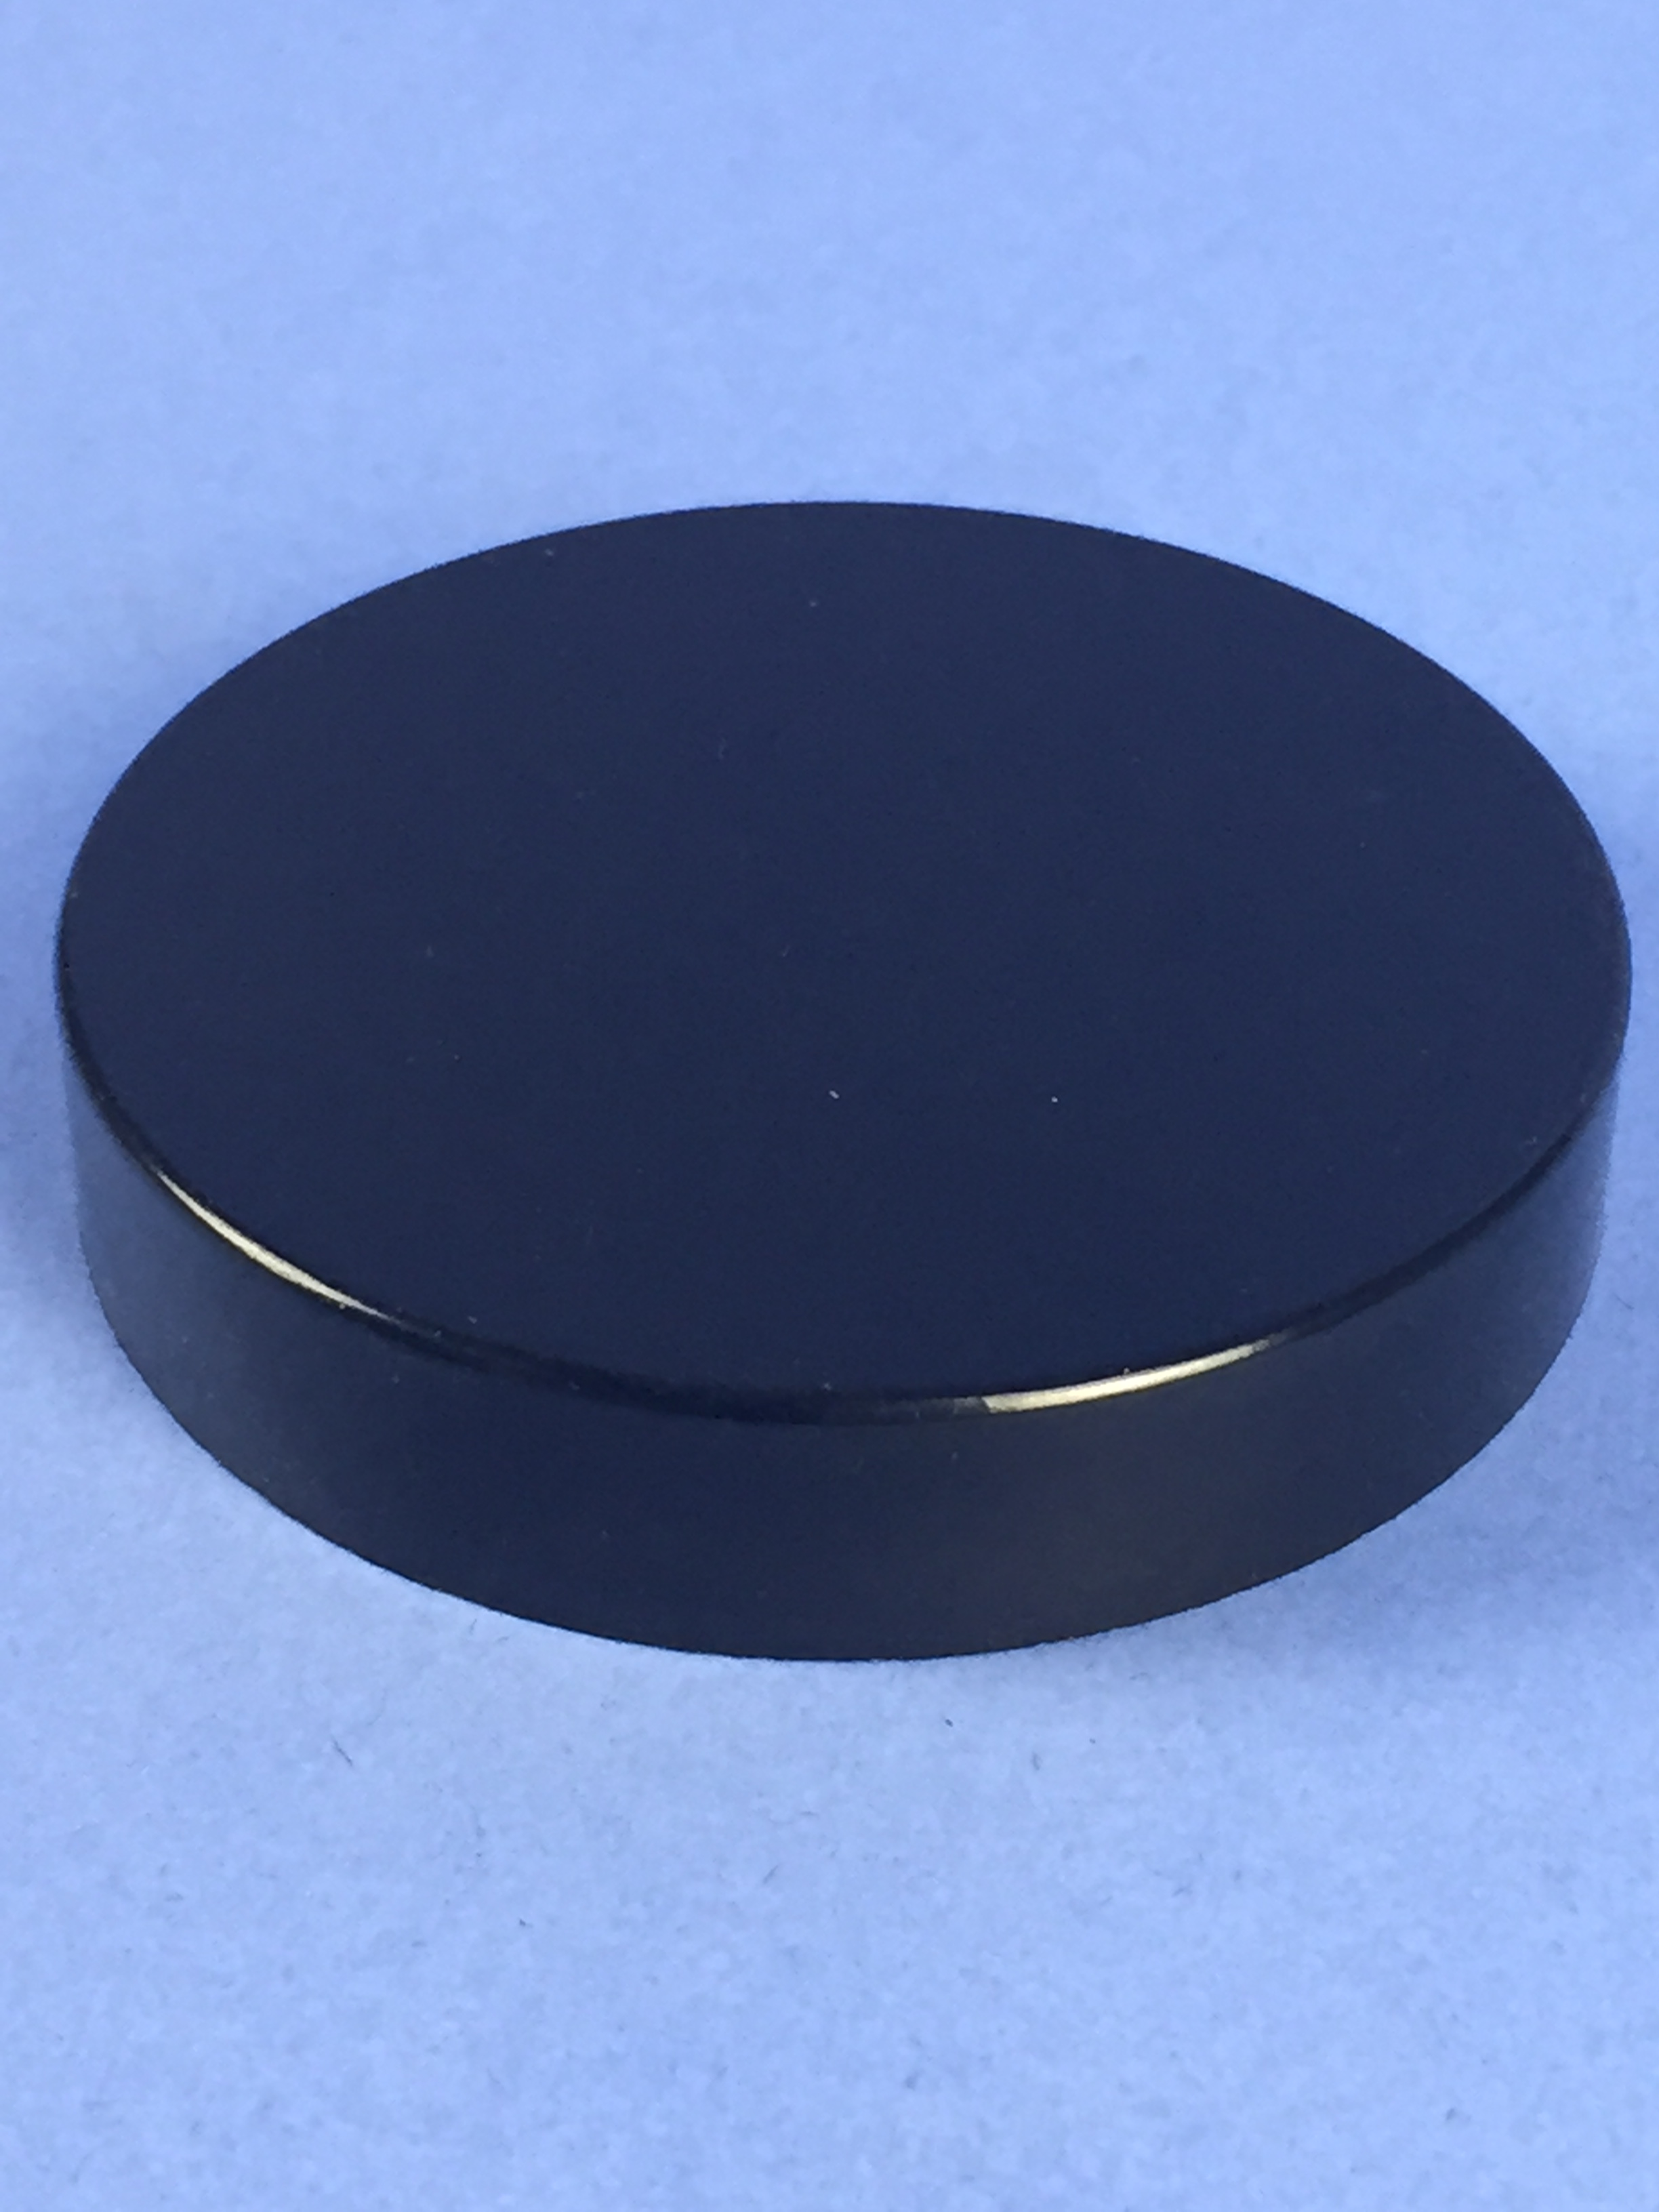 Black Lid For Wn10 Bottle Bristol Plastics Amp Containers